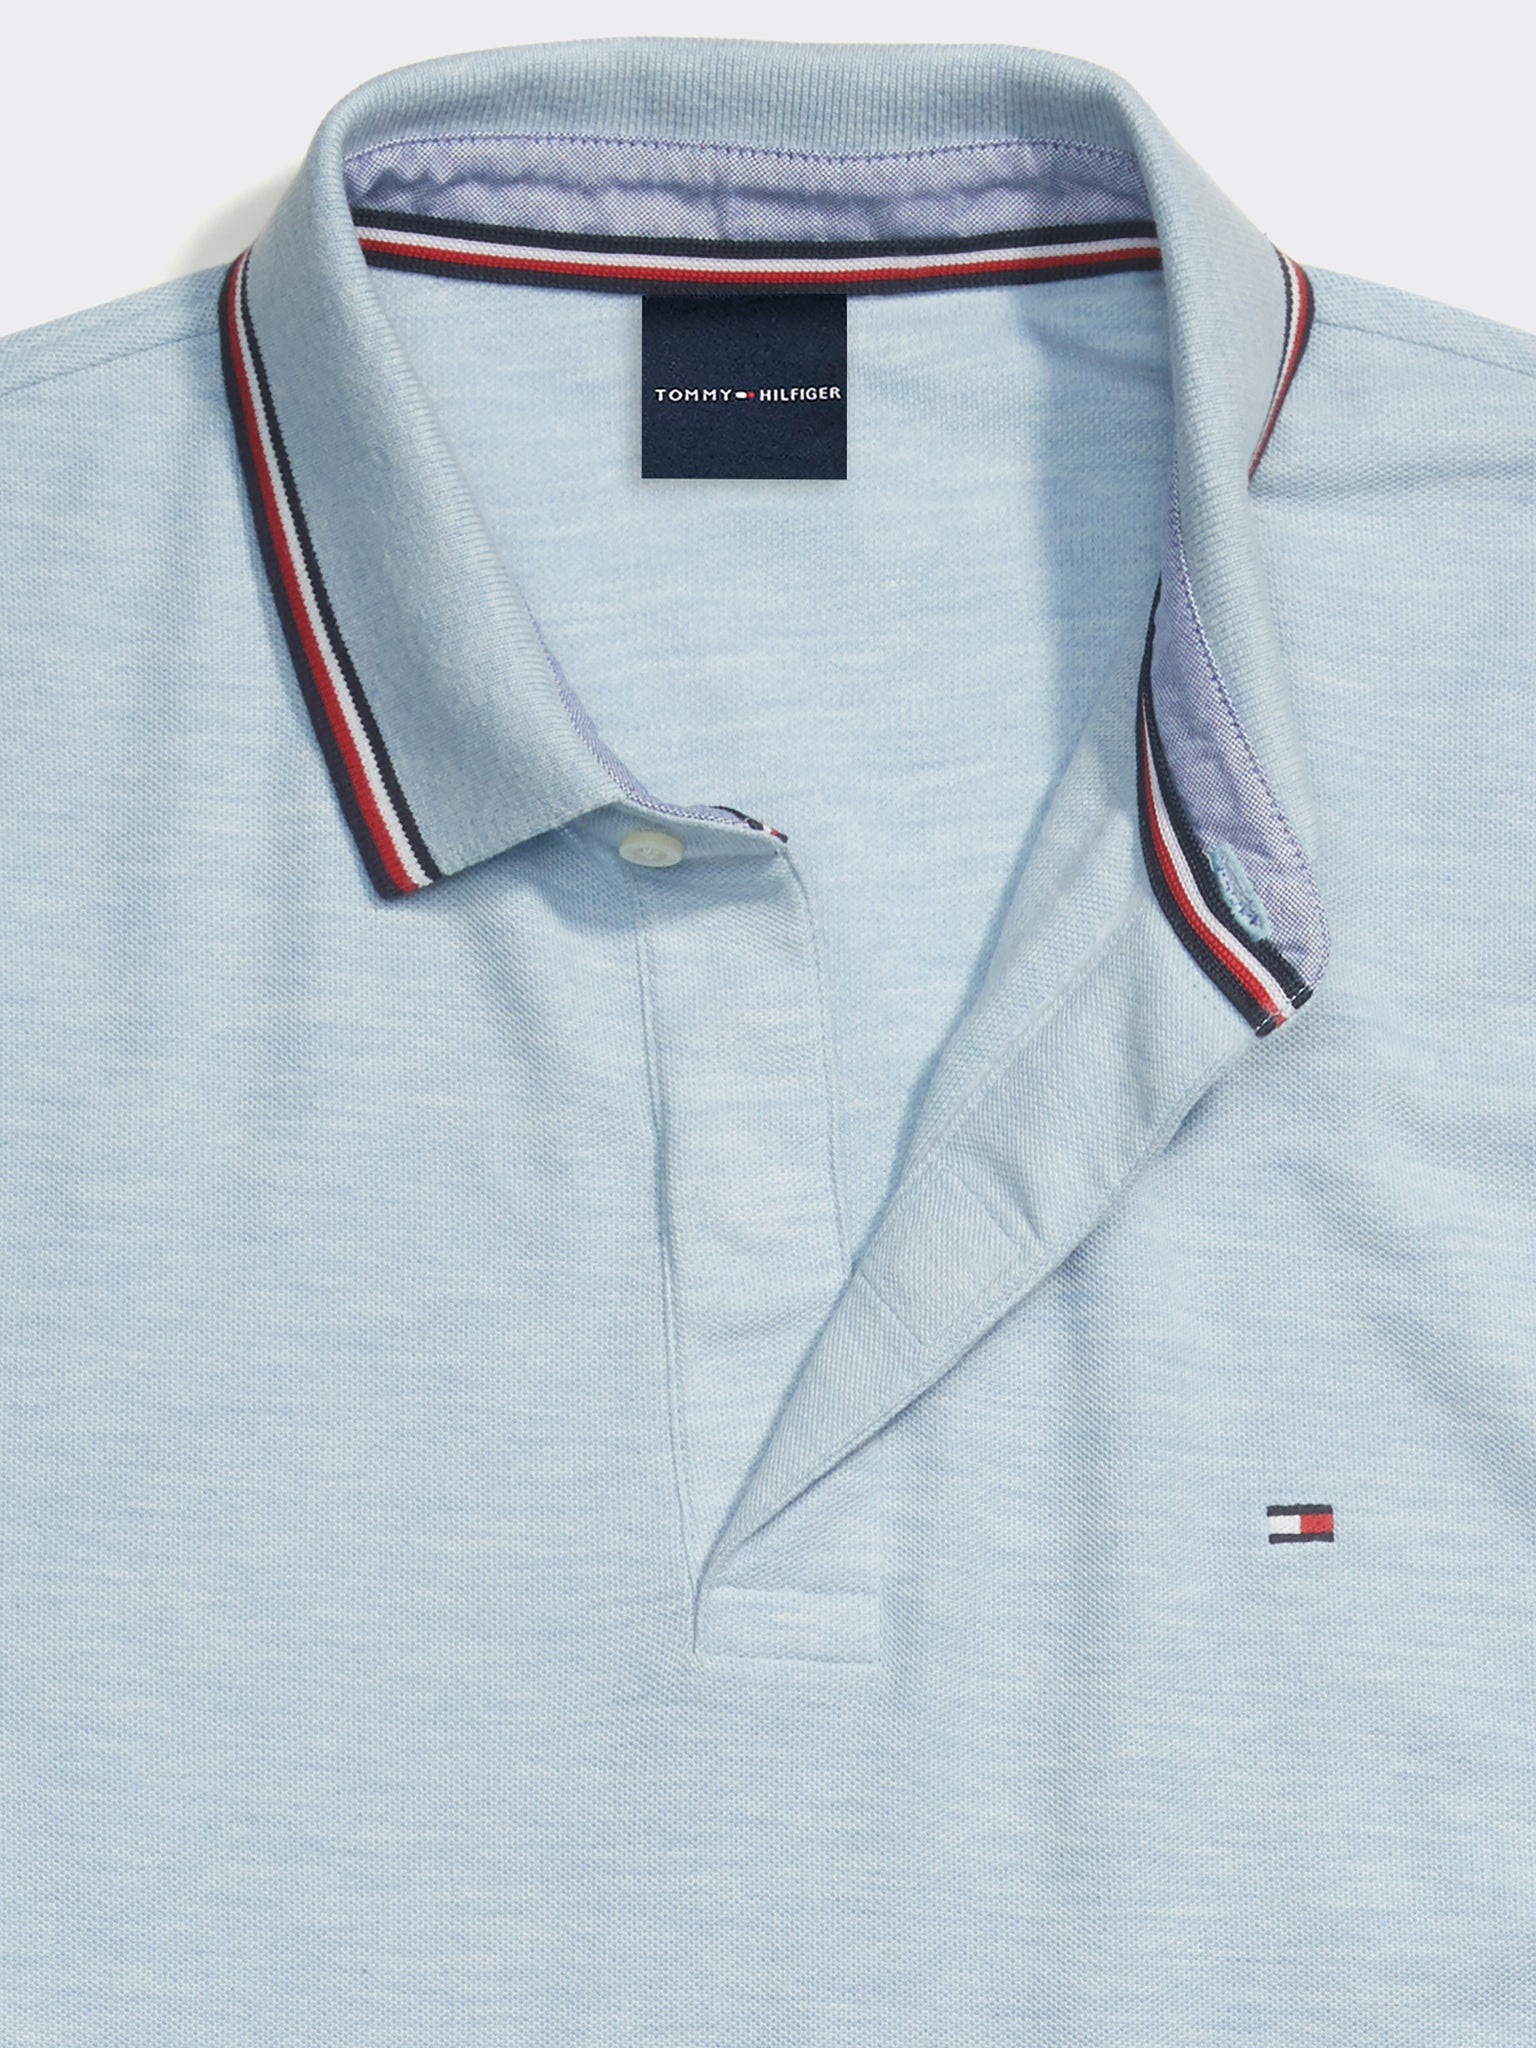 Winston Polo - Chambray Blue